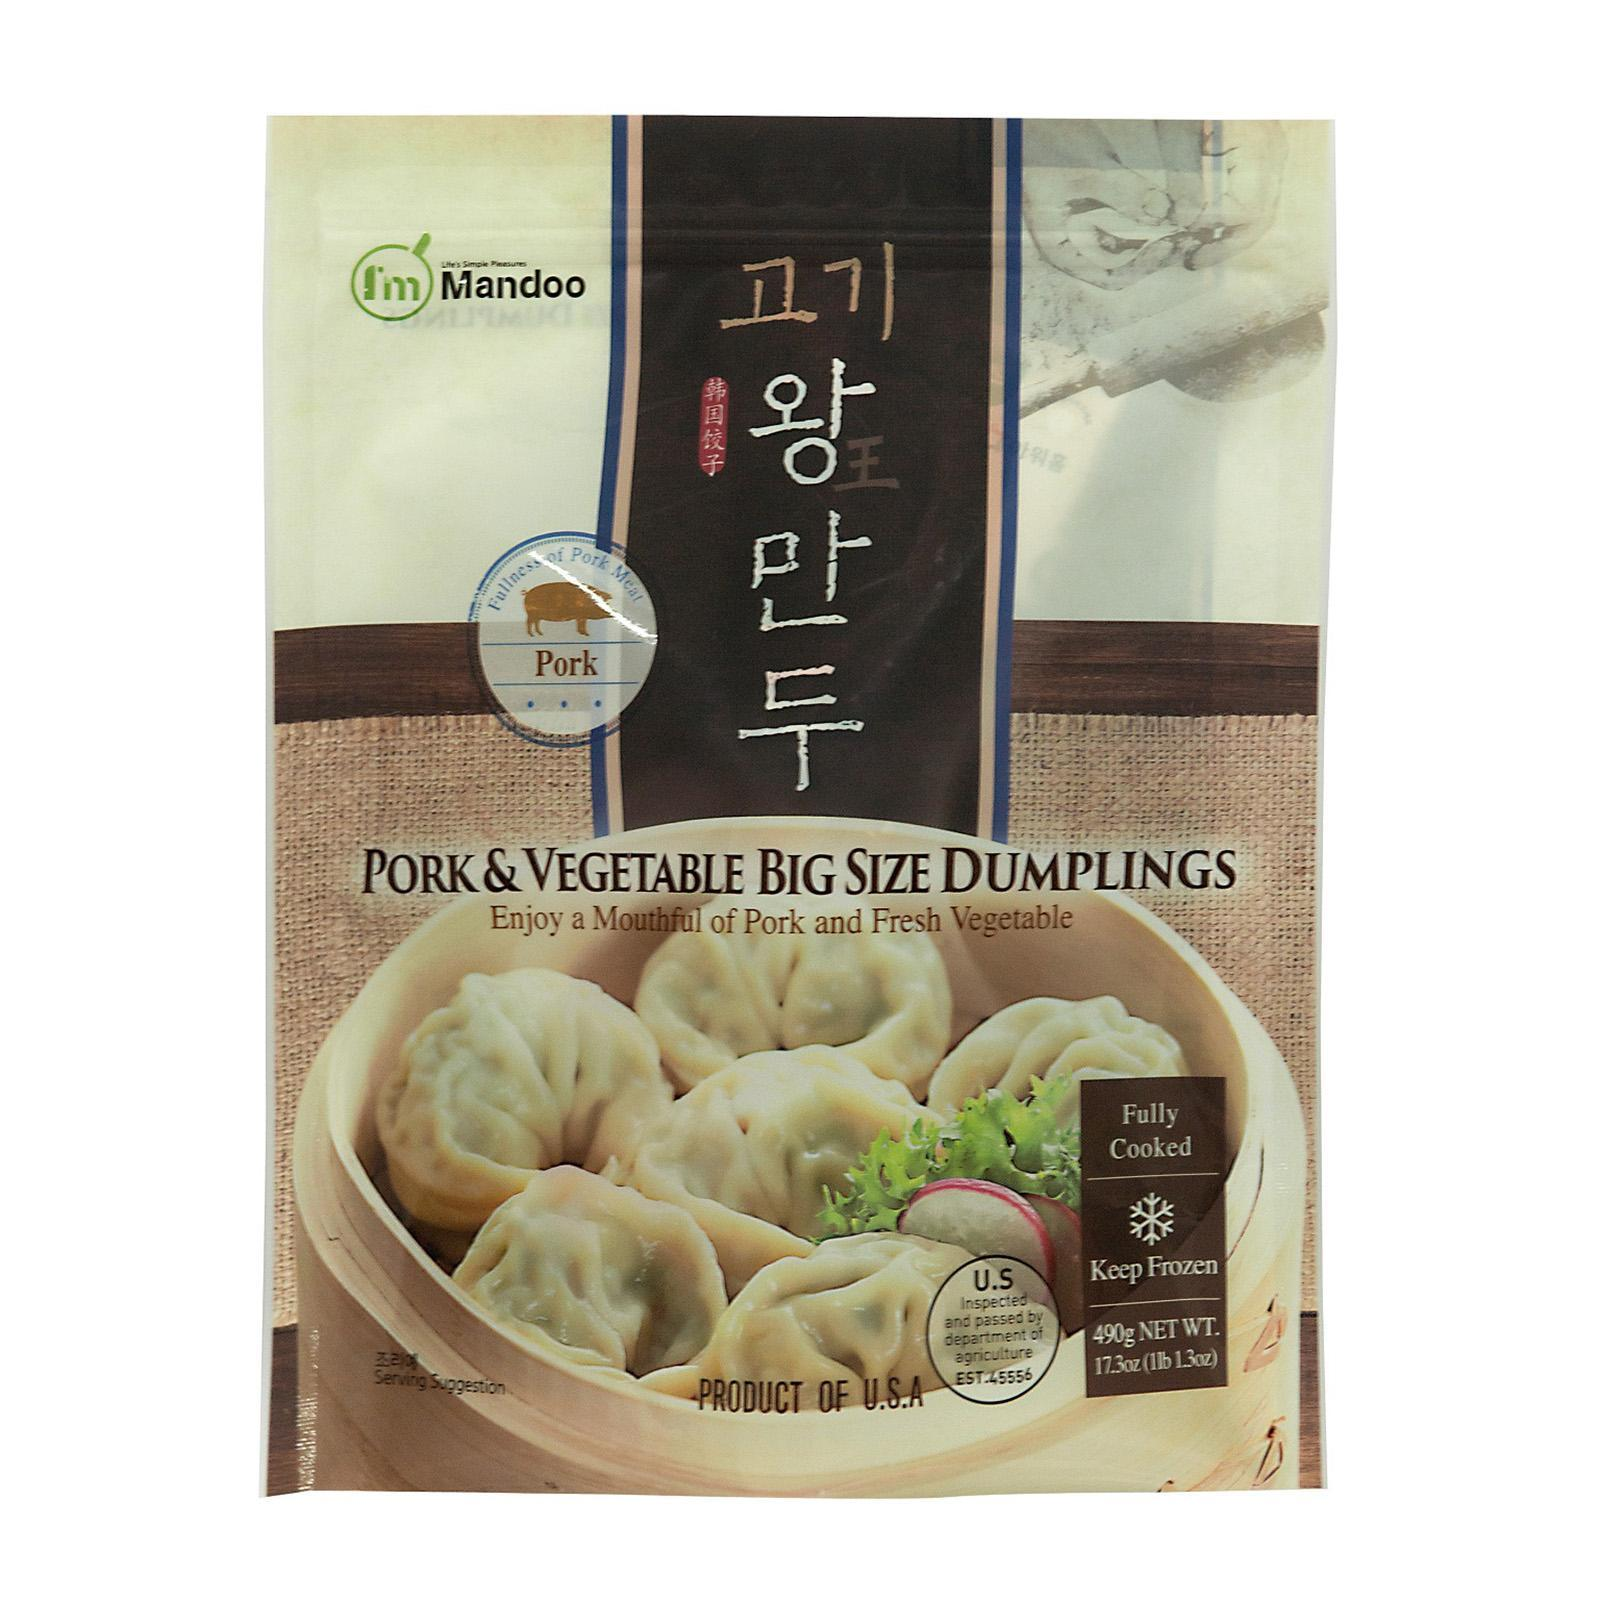 I'm Mandoo Pork And Vegetable Big Size Korean Dumplings - Frozen